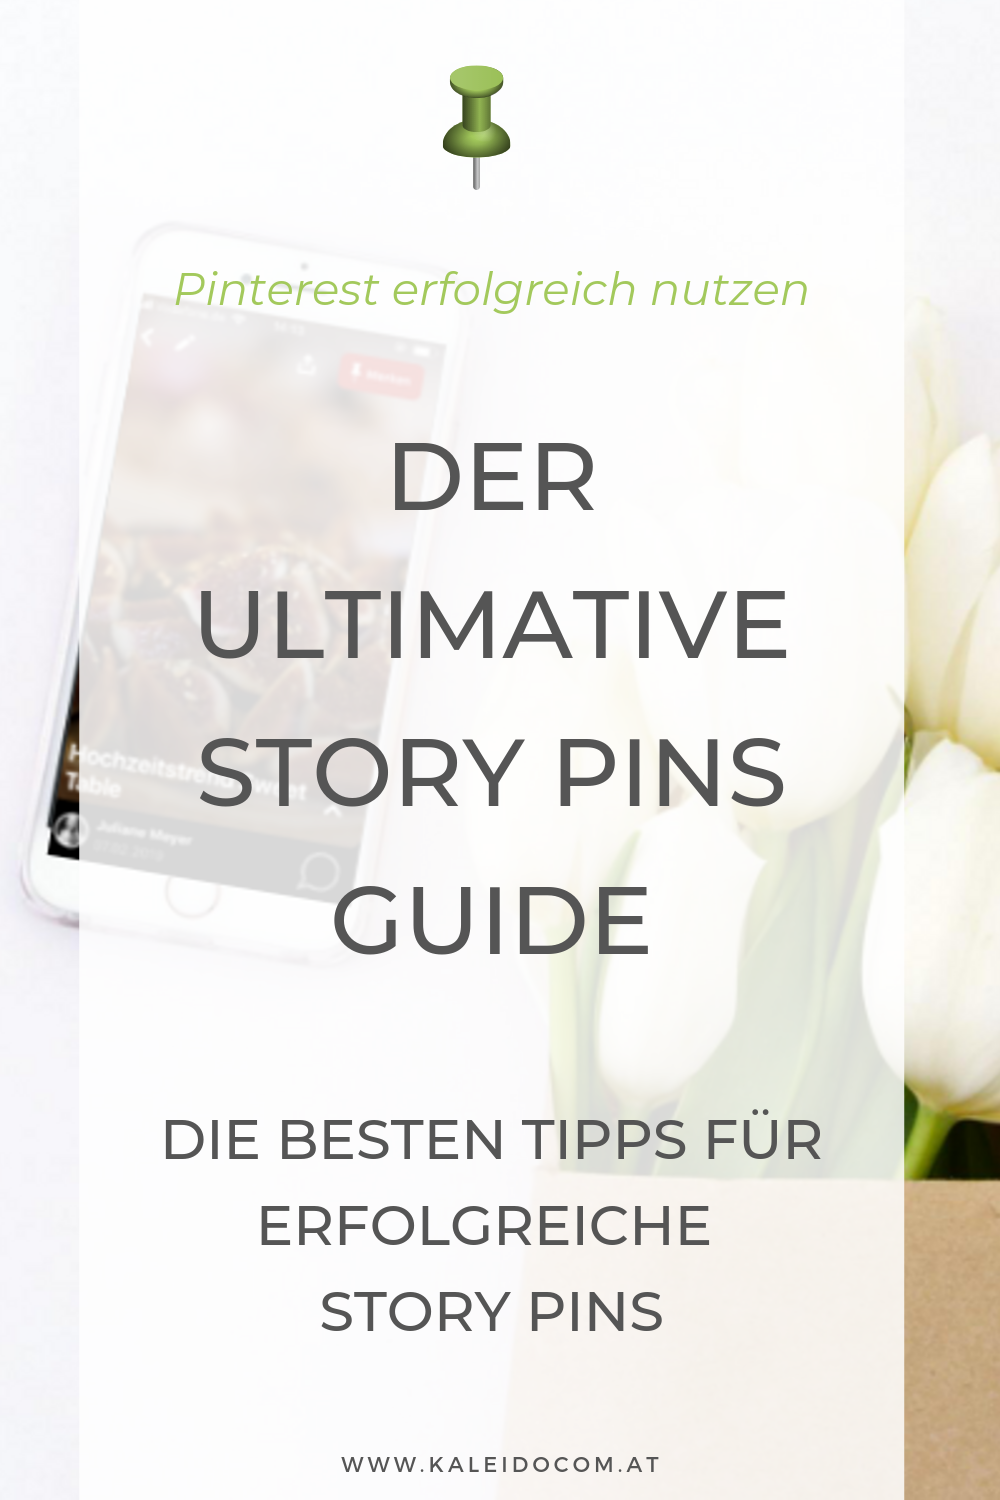 Der ultimative Pinterest Story Pin Guide 4